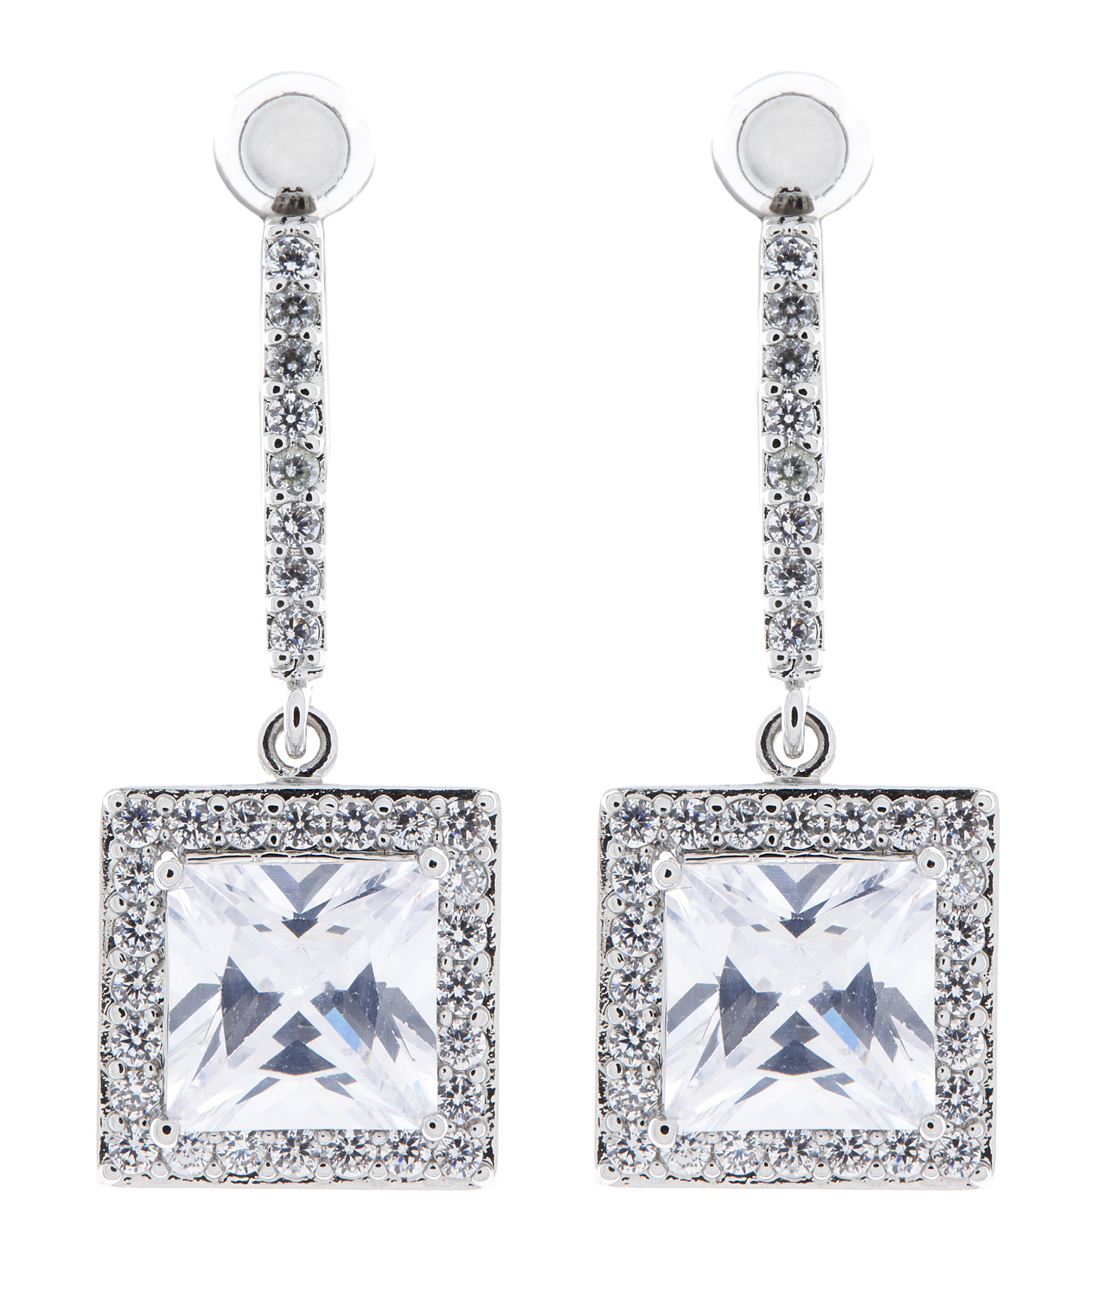 Clip On Earrings - Mya - silver earring with clear cubic zirconia crystals and a square stone